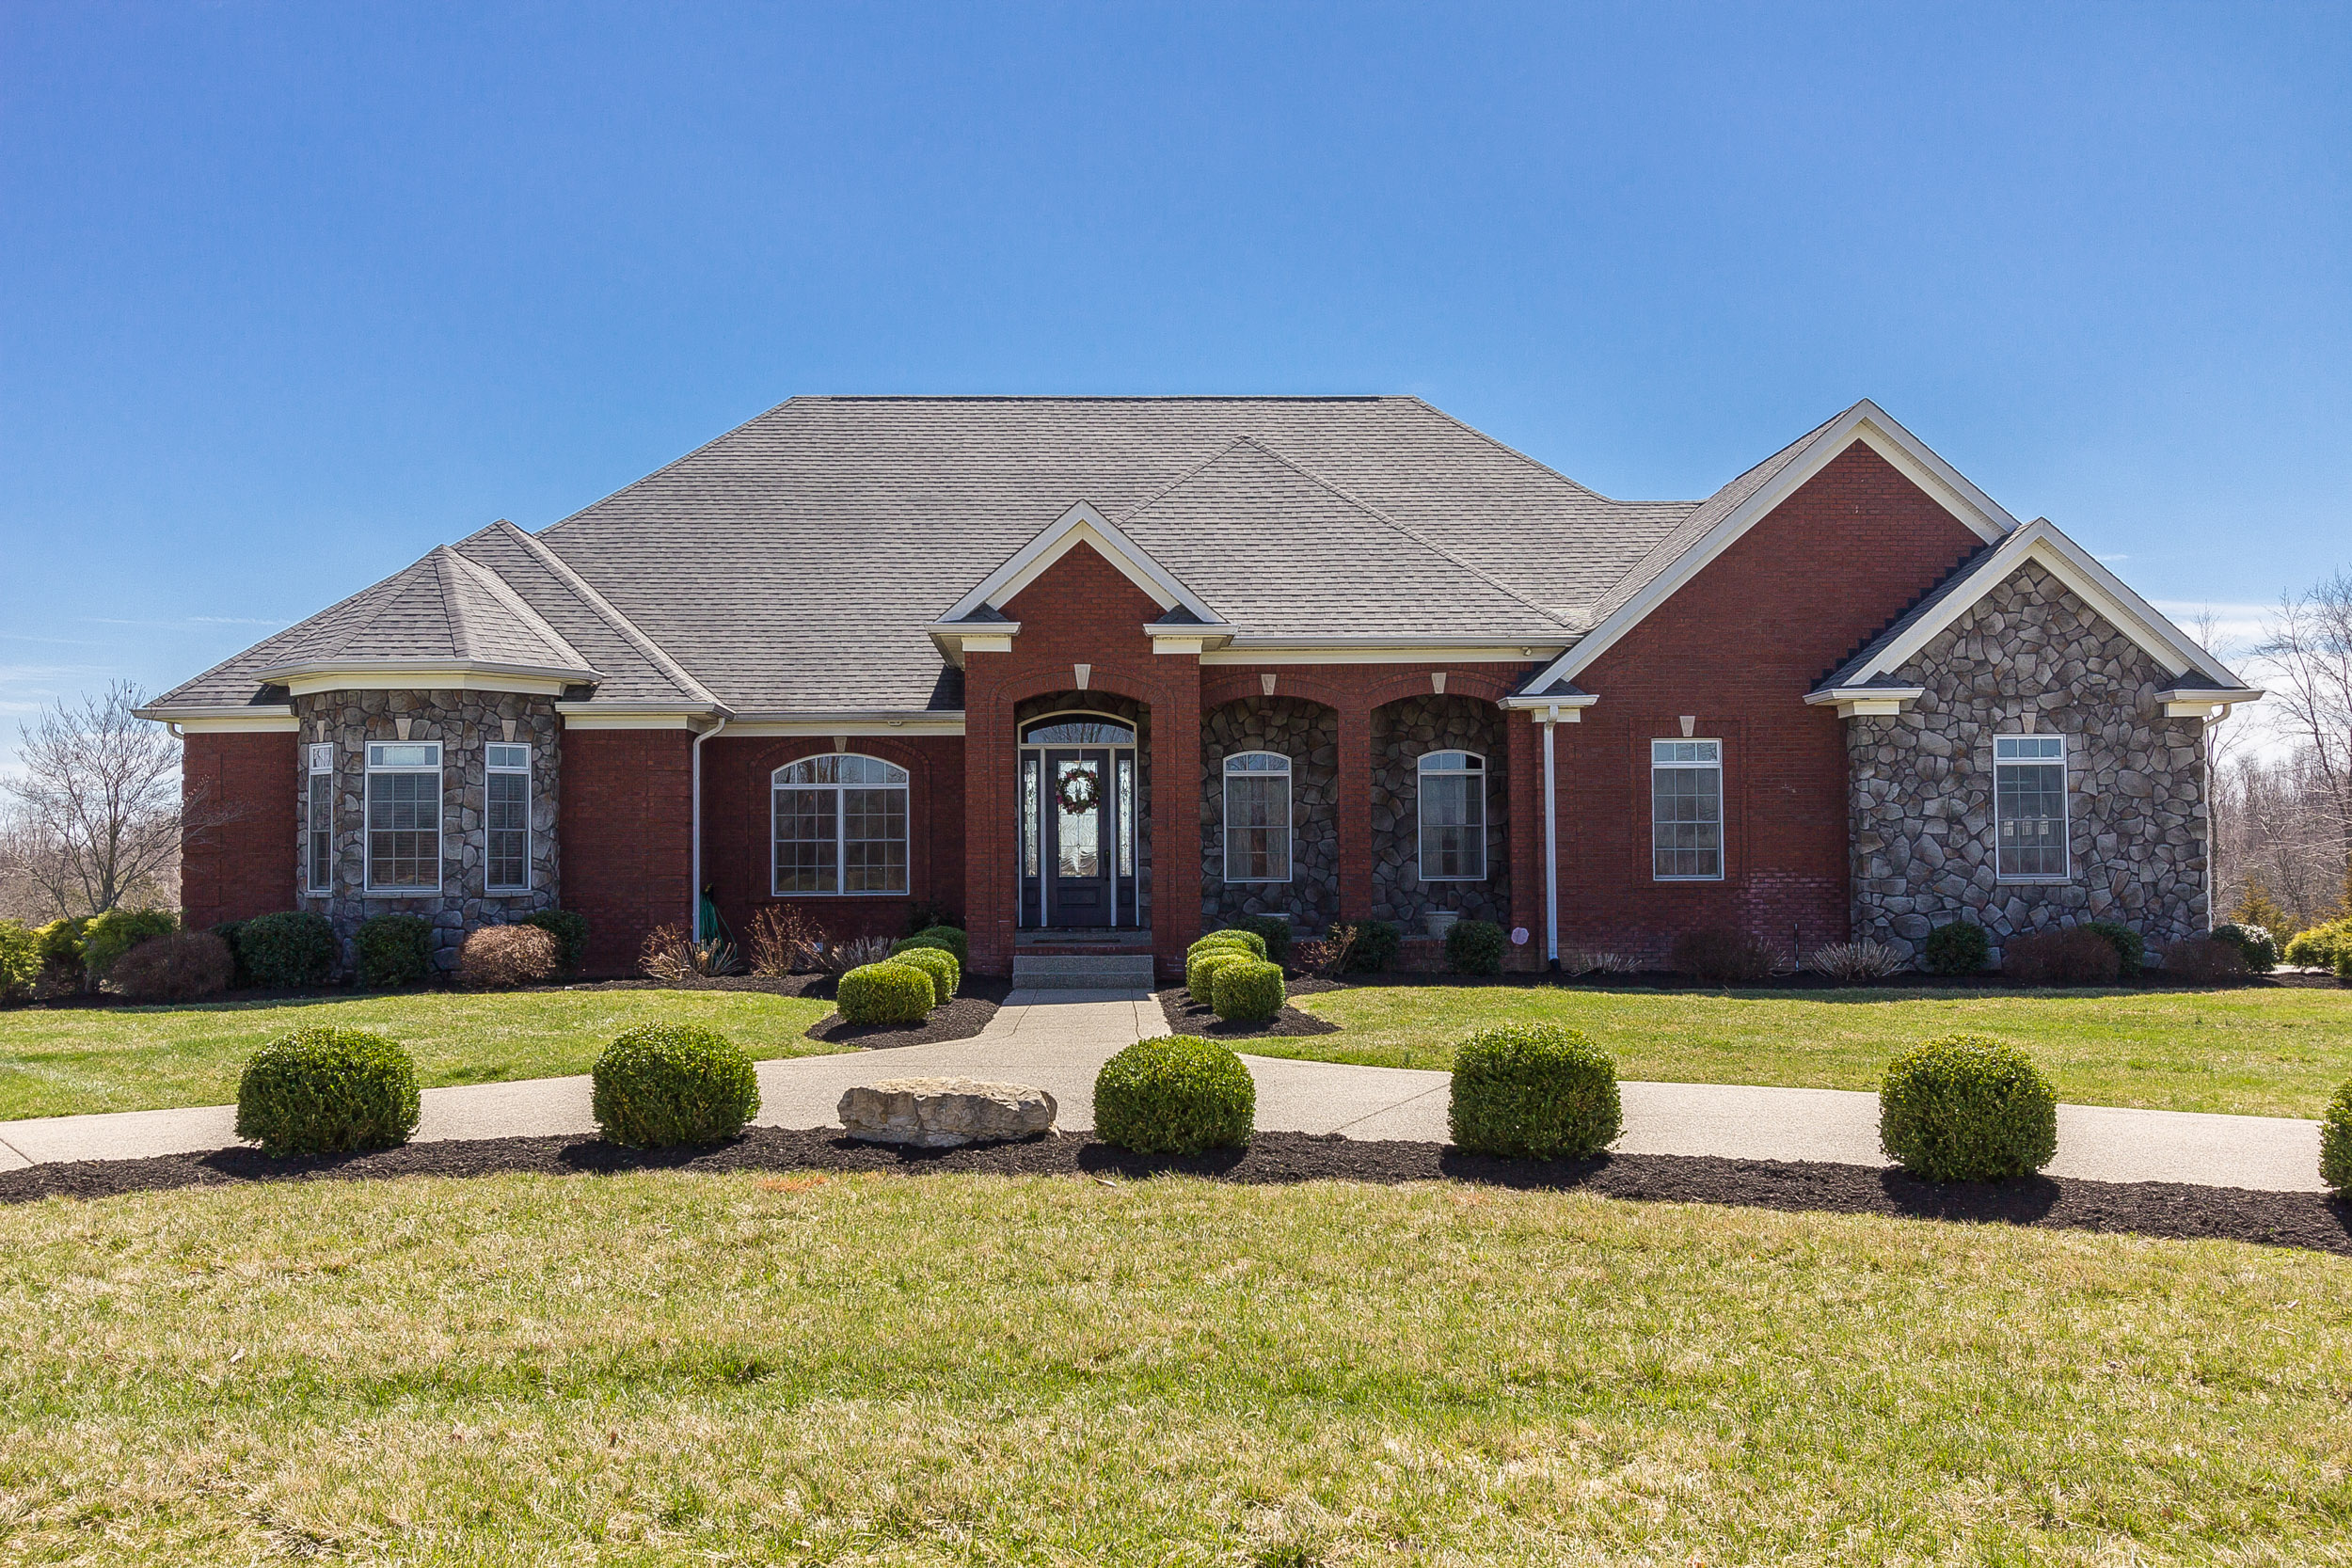 9609 West View Ct, Crestwood, Kentucky 40014